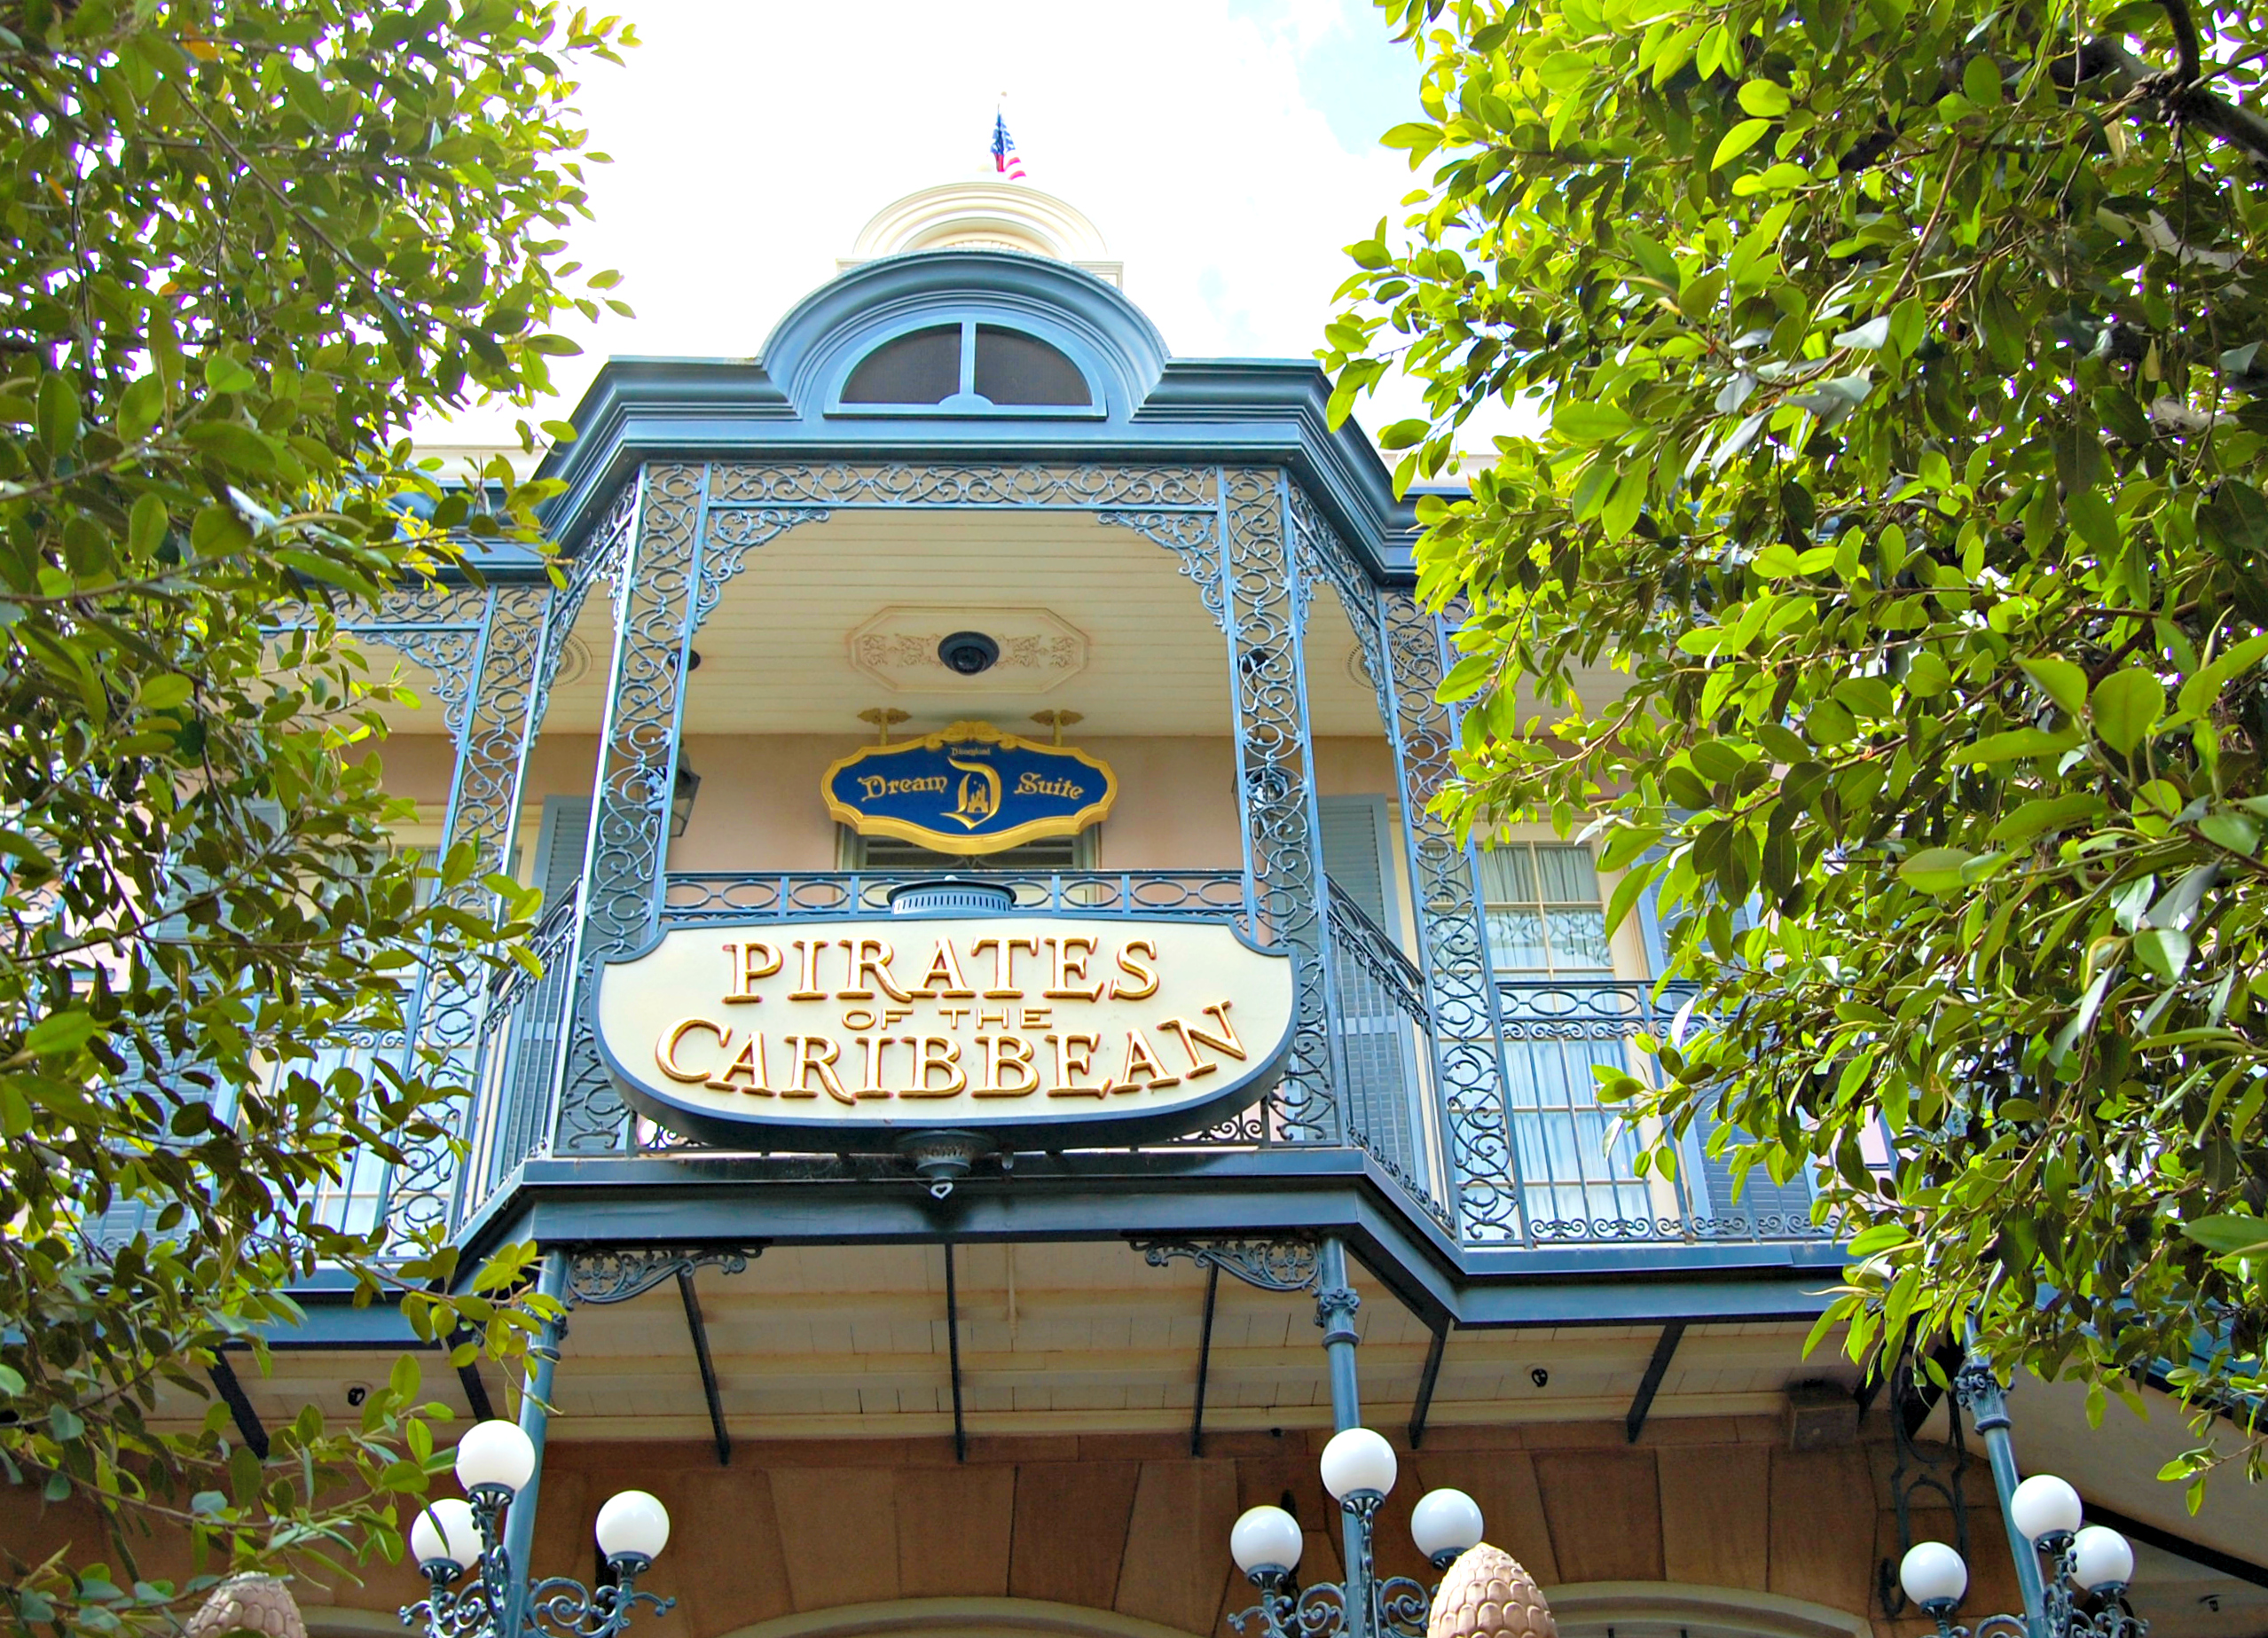 Disneyland's entrance to Pirates of the Caribbean